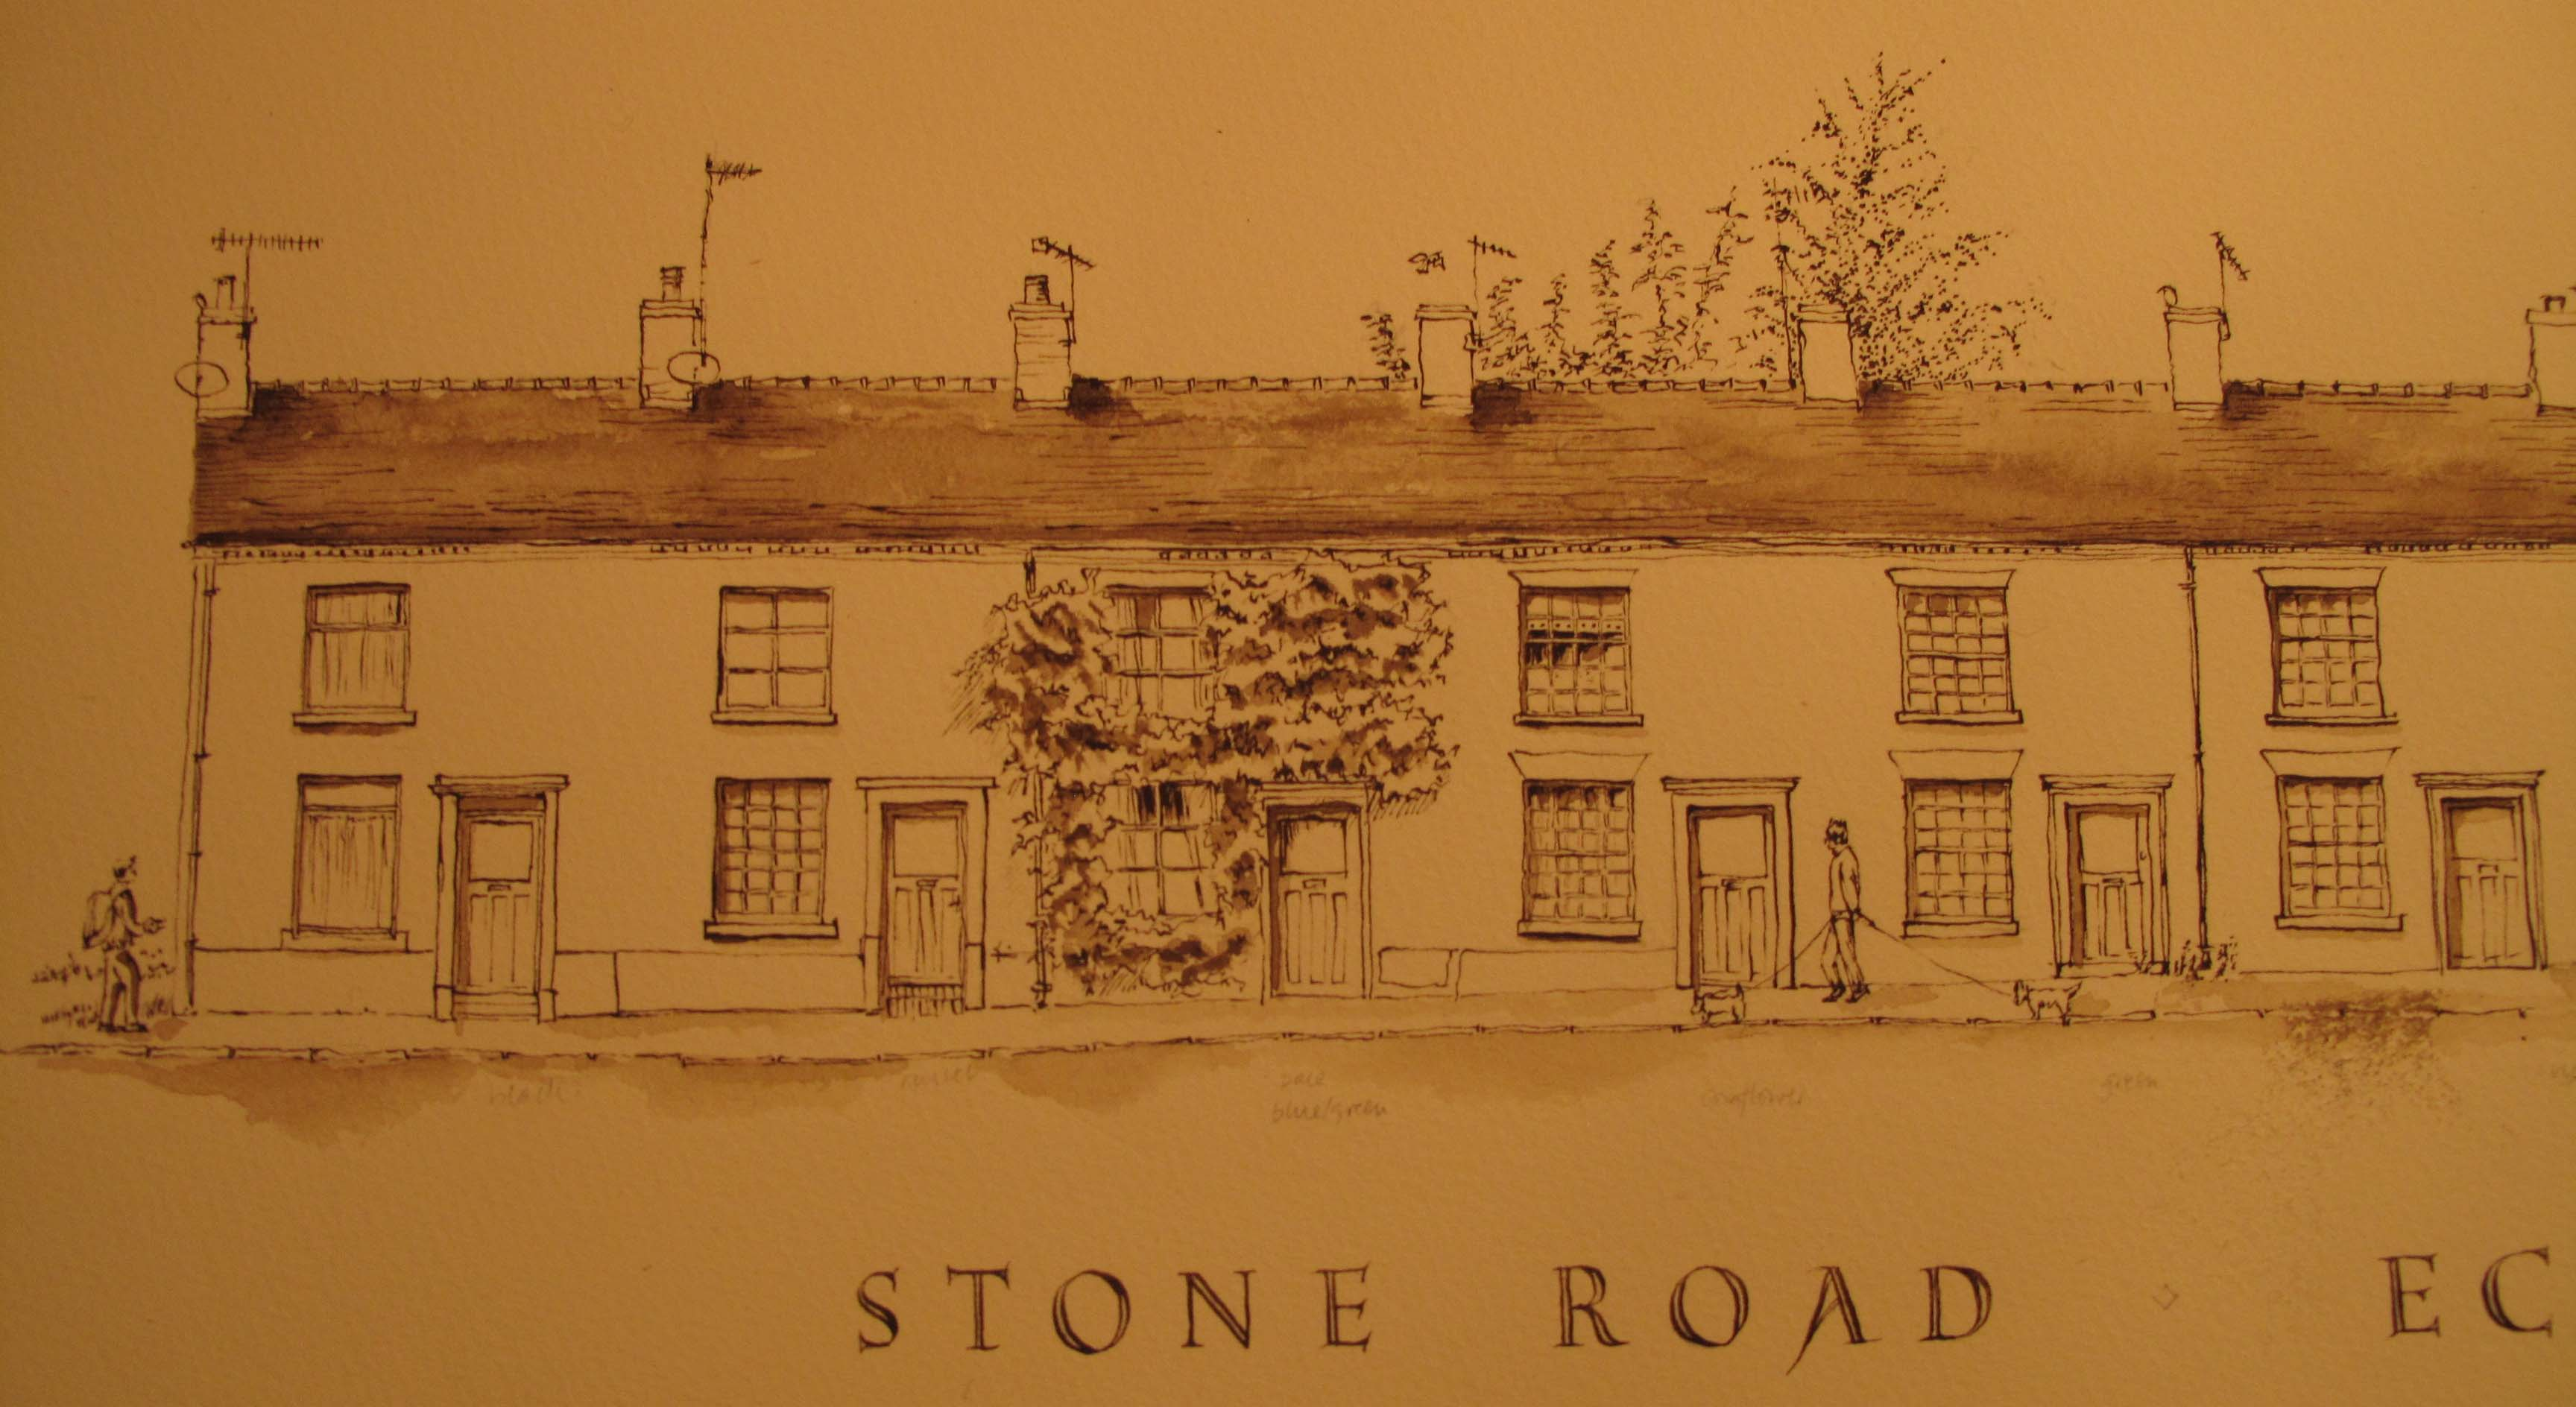 Stone Road Eccleshall, pen and ink stage